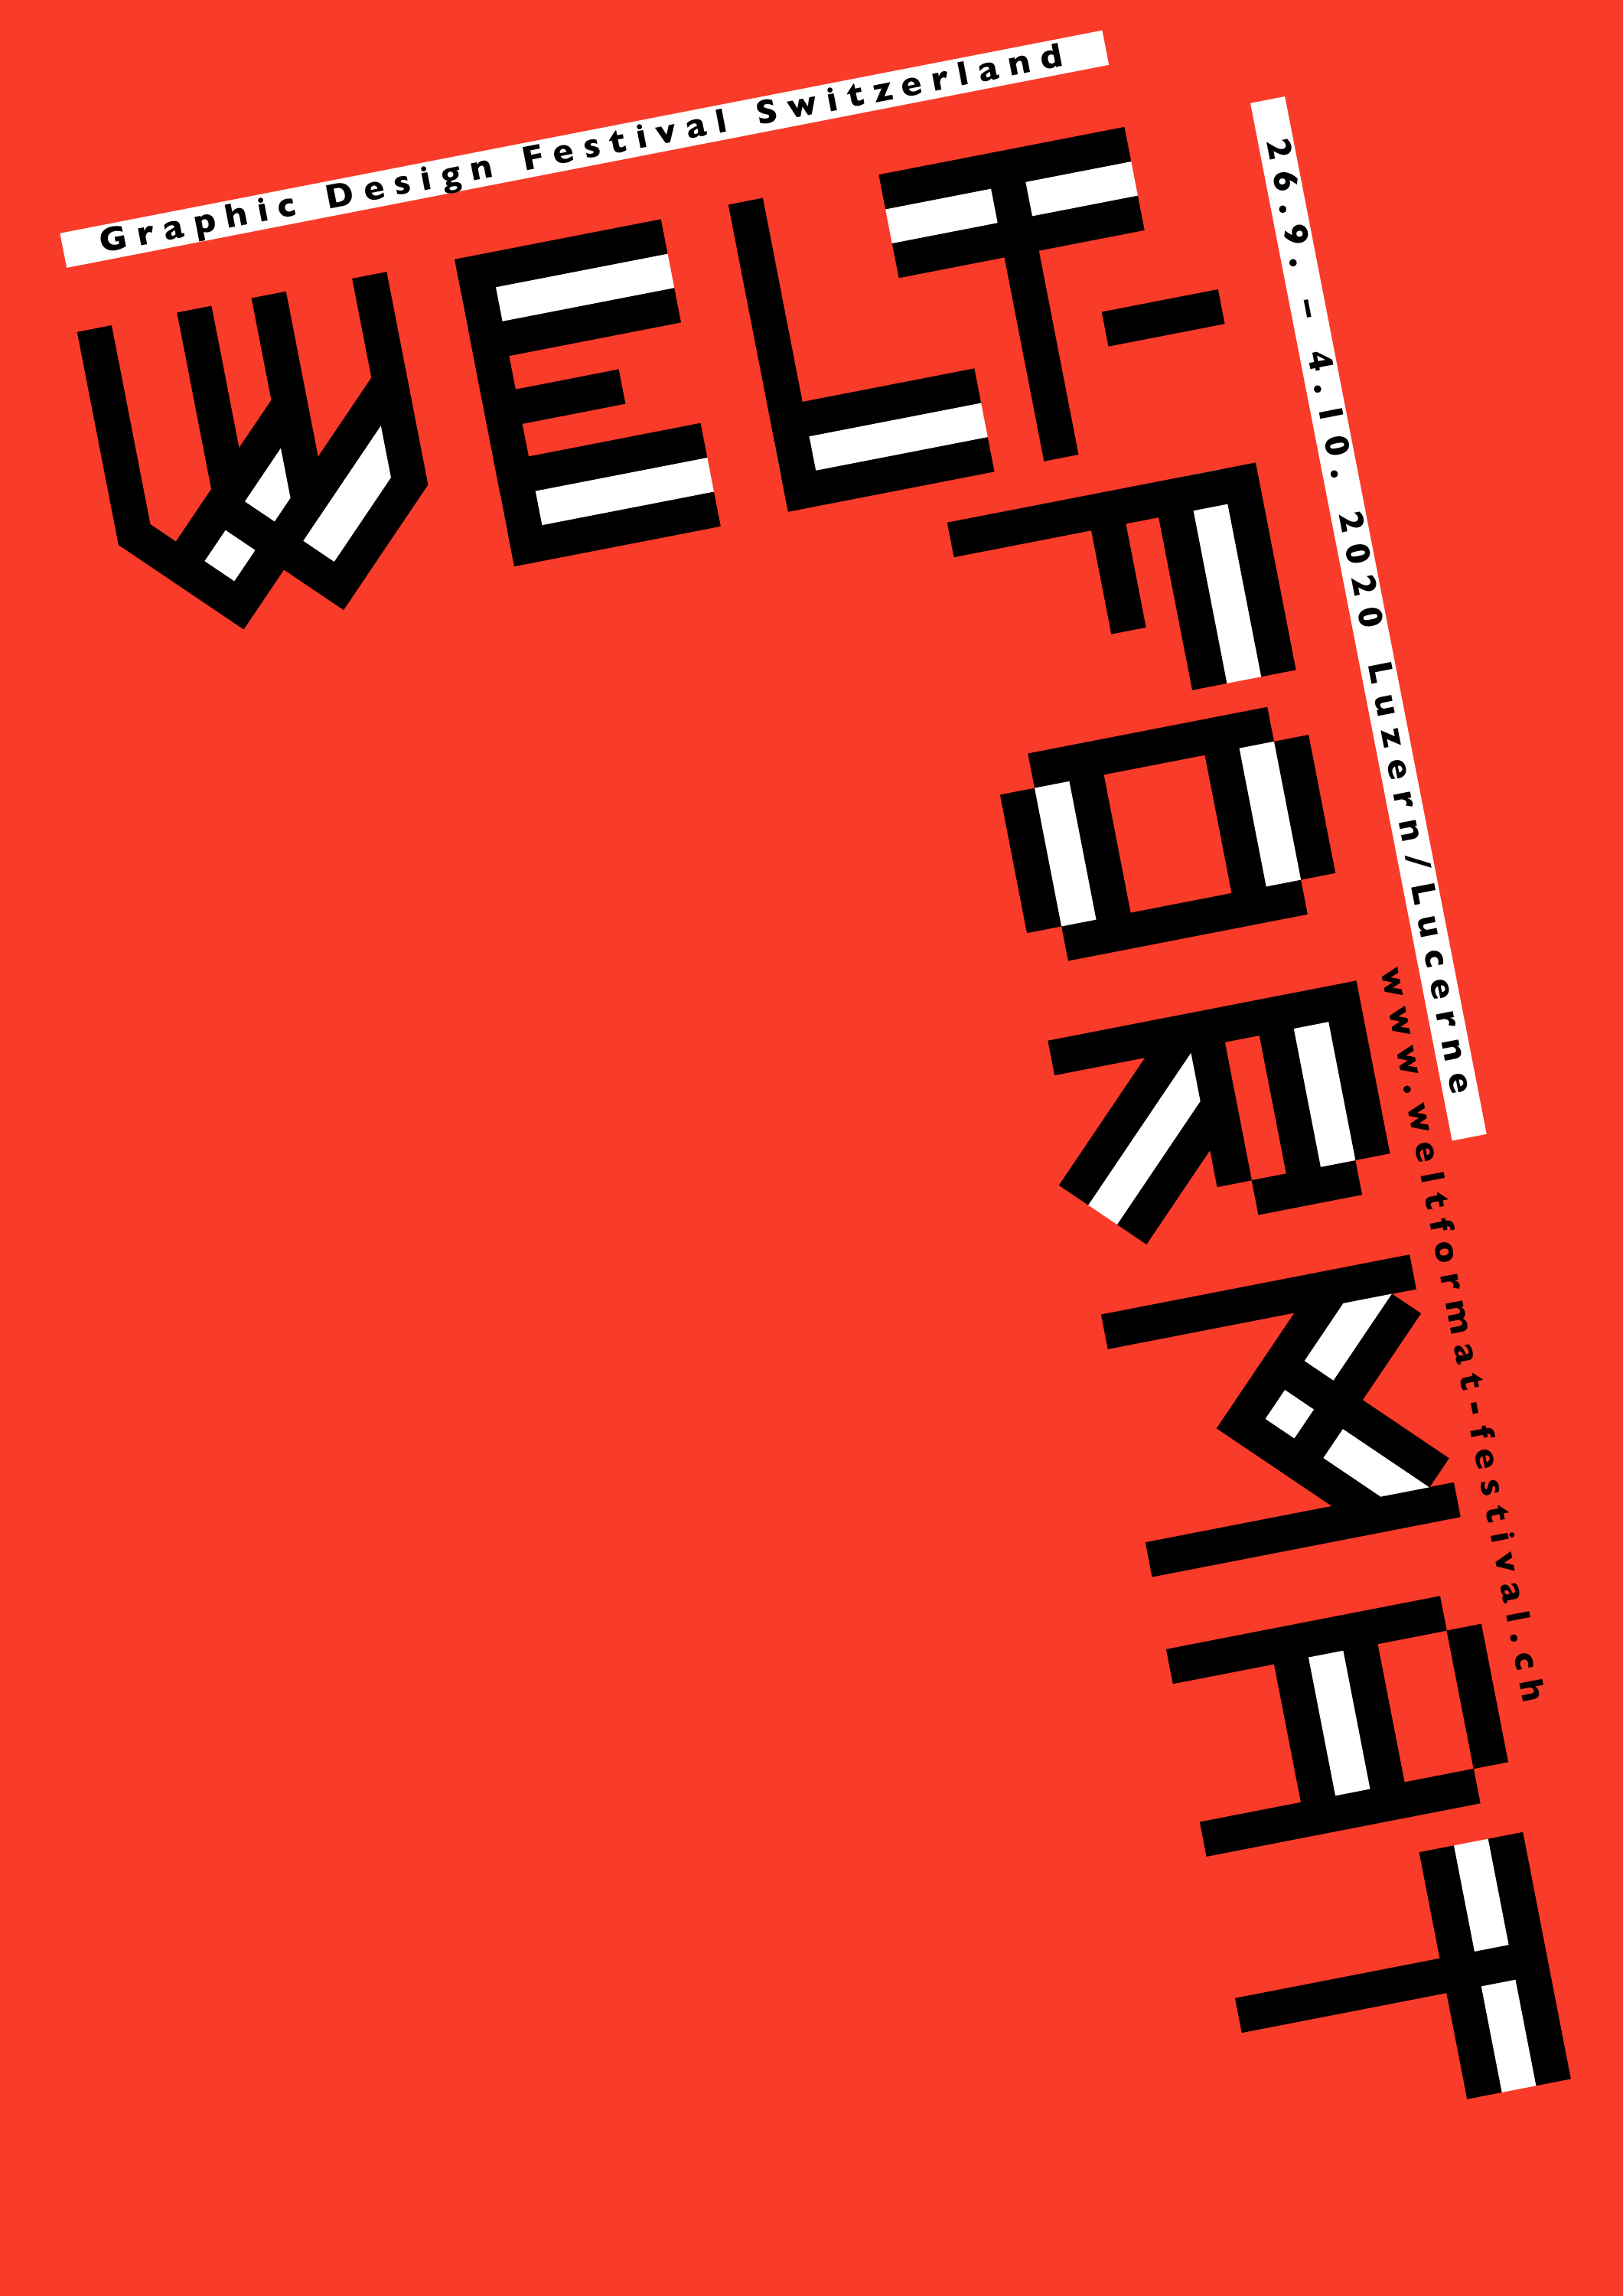 WELTFORMAT 20 - Graphic Design Festival